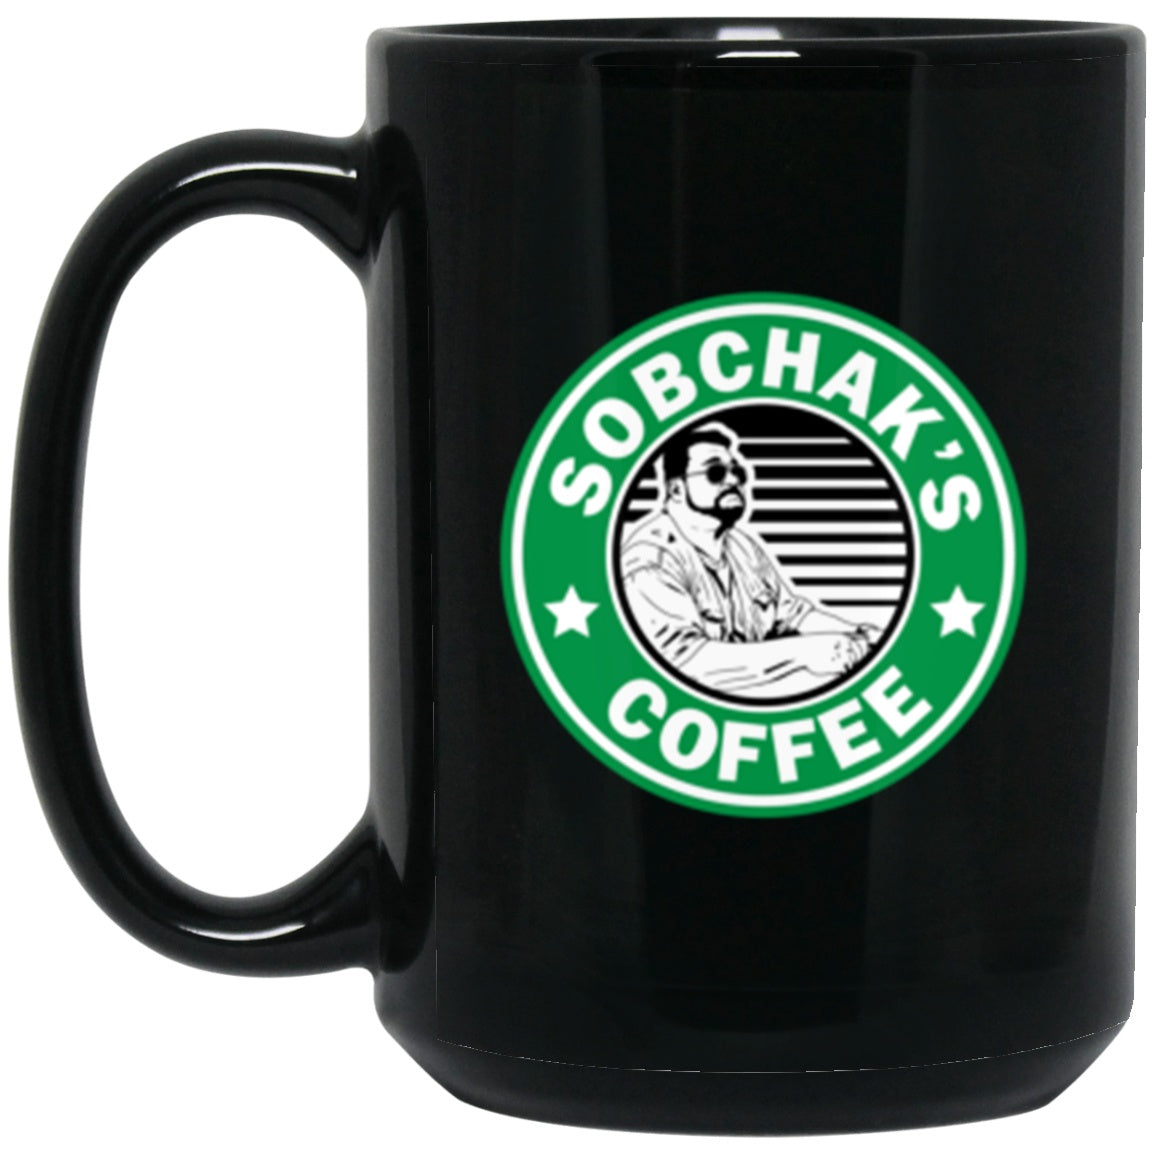 Drinkware - Sobchak's Coffee Mug 15oz (2-sided)